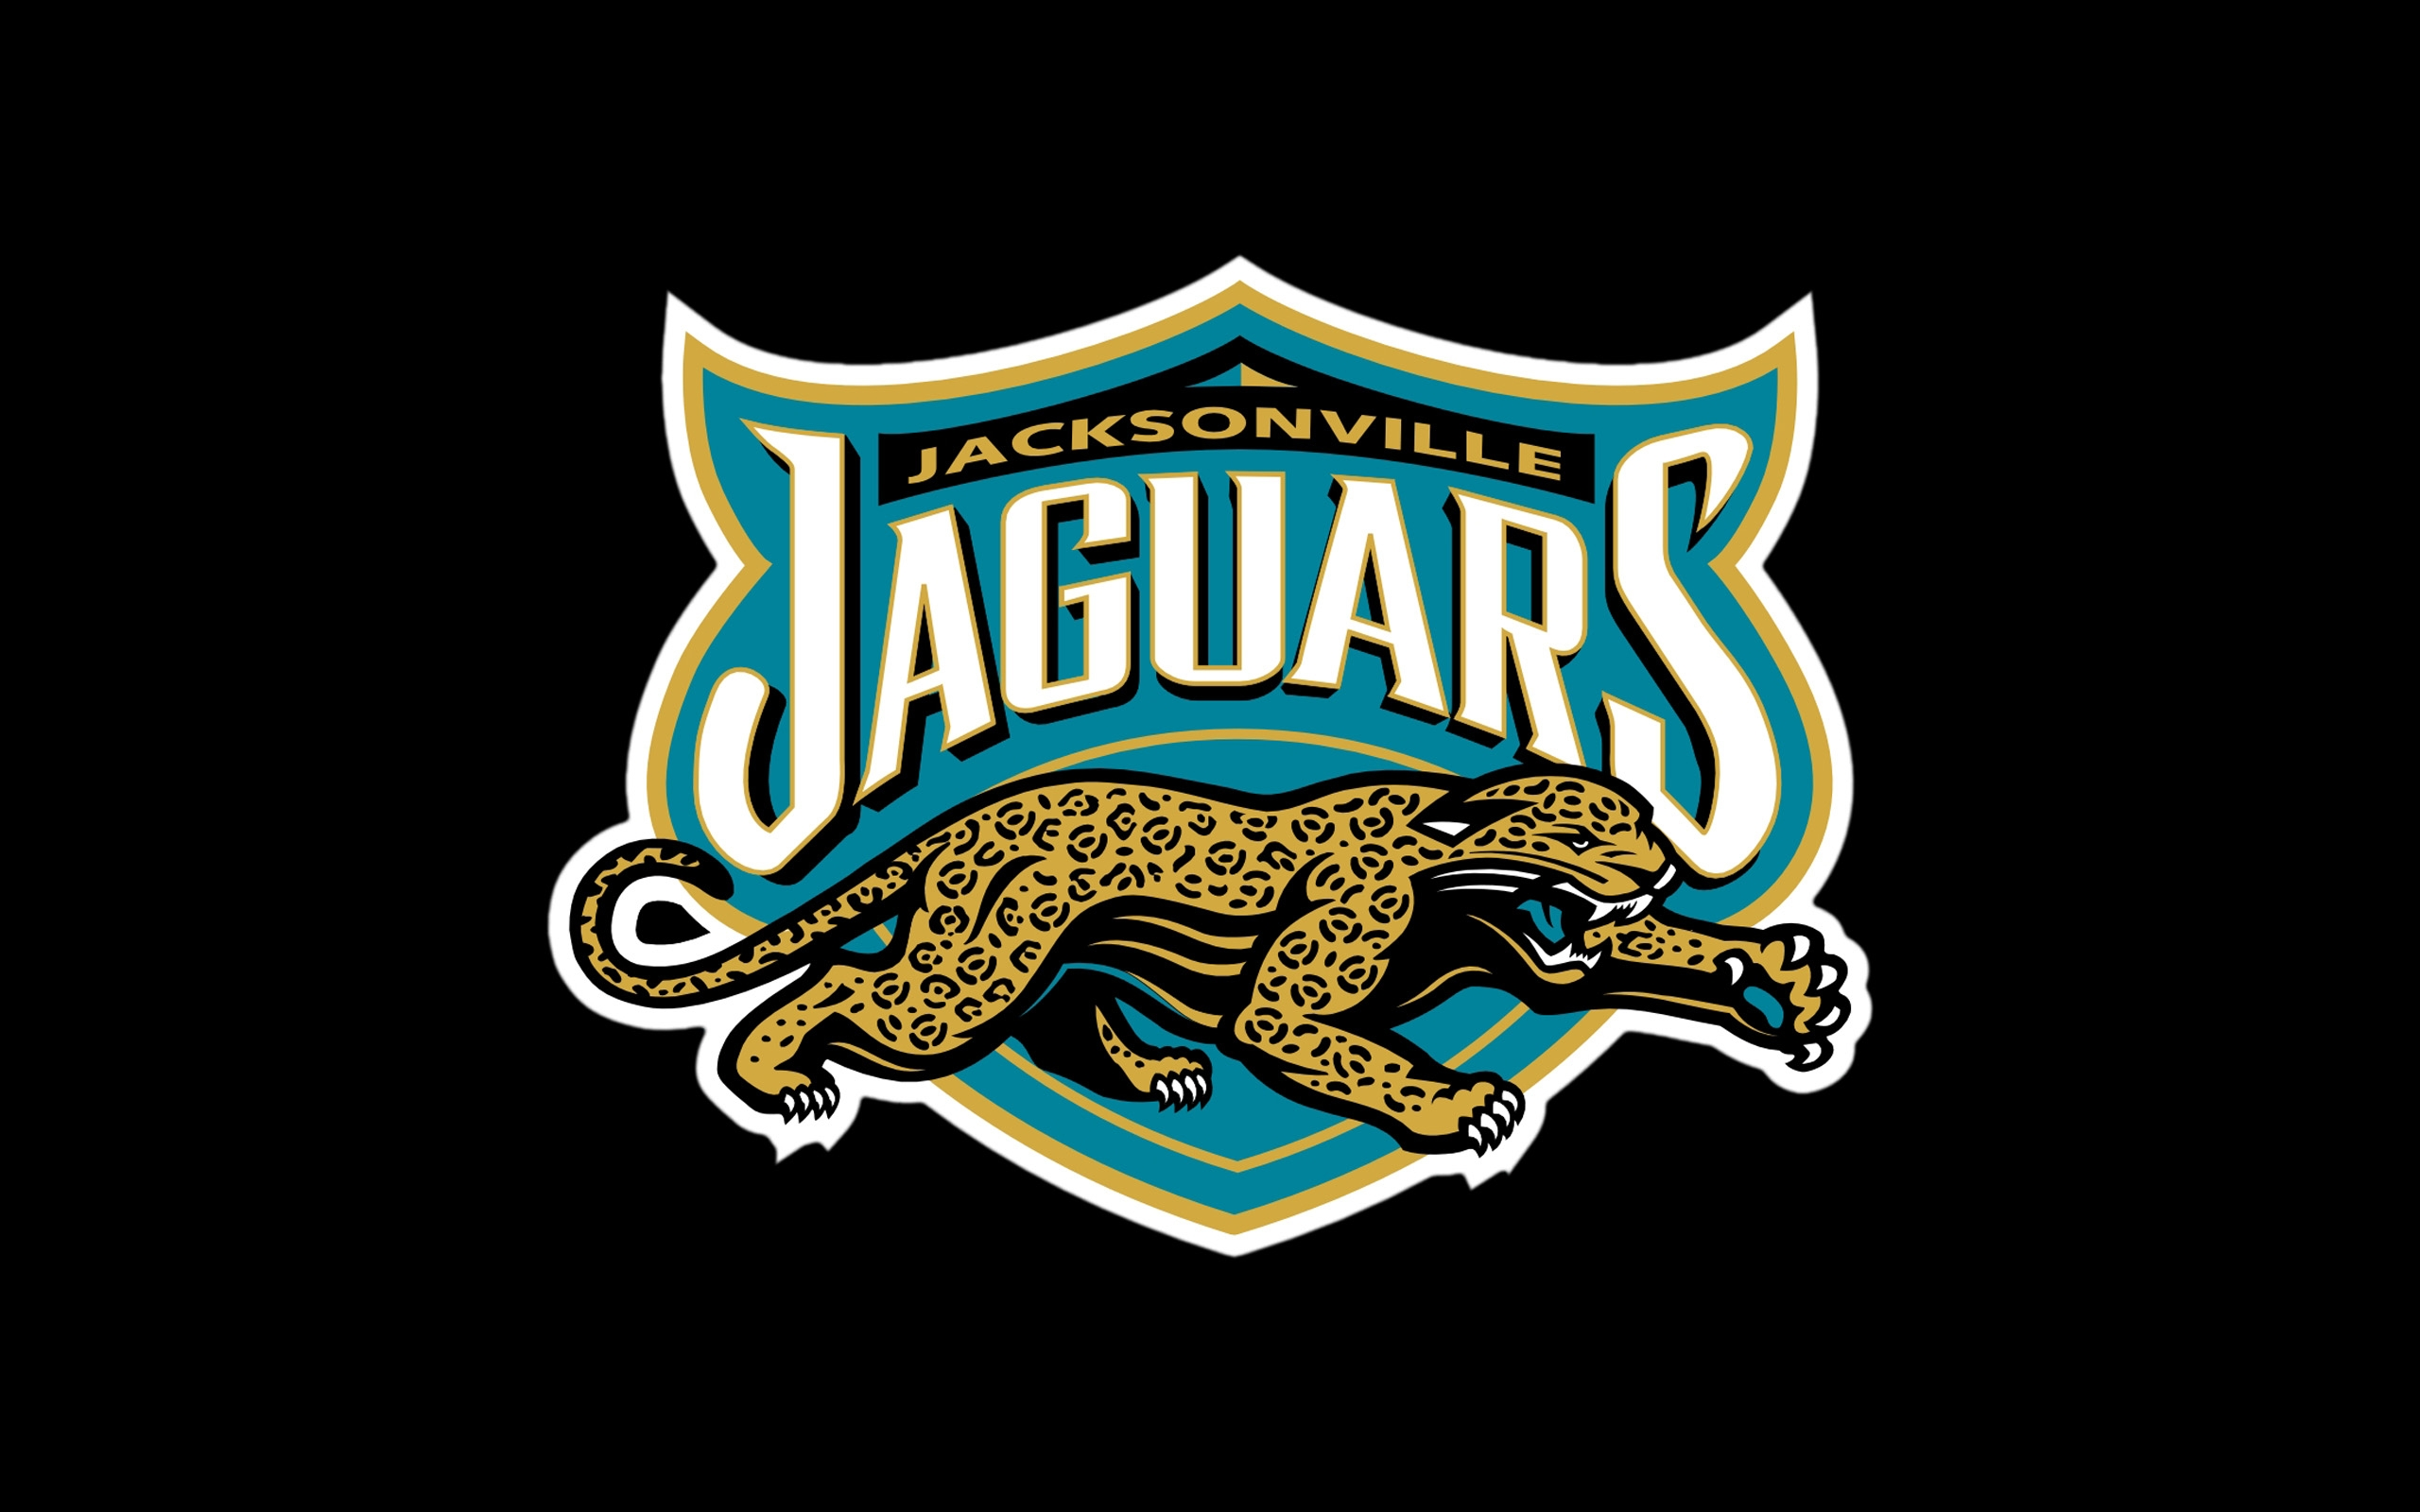 JACKSONVILLE JAGUARS nfl football rw wallpaper backgroundJacksonville Jaguars Wallpaper 2013